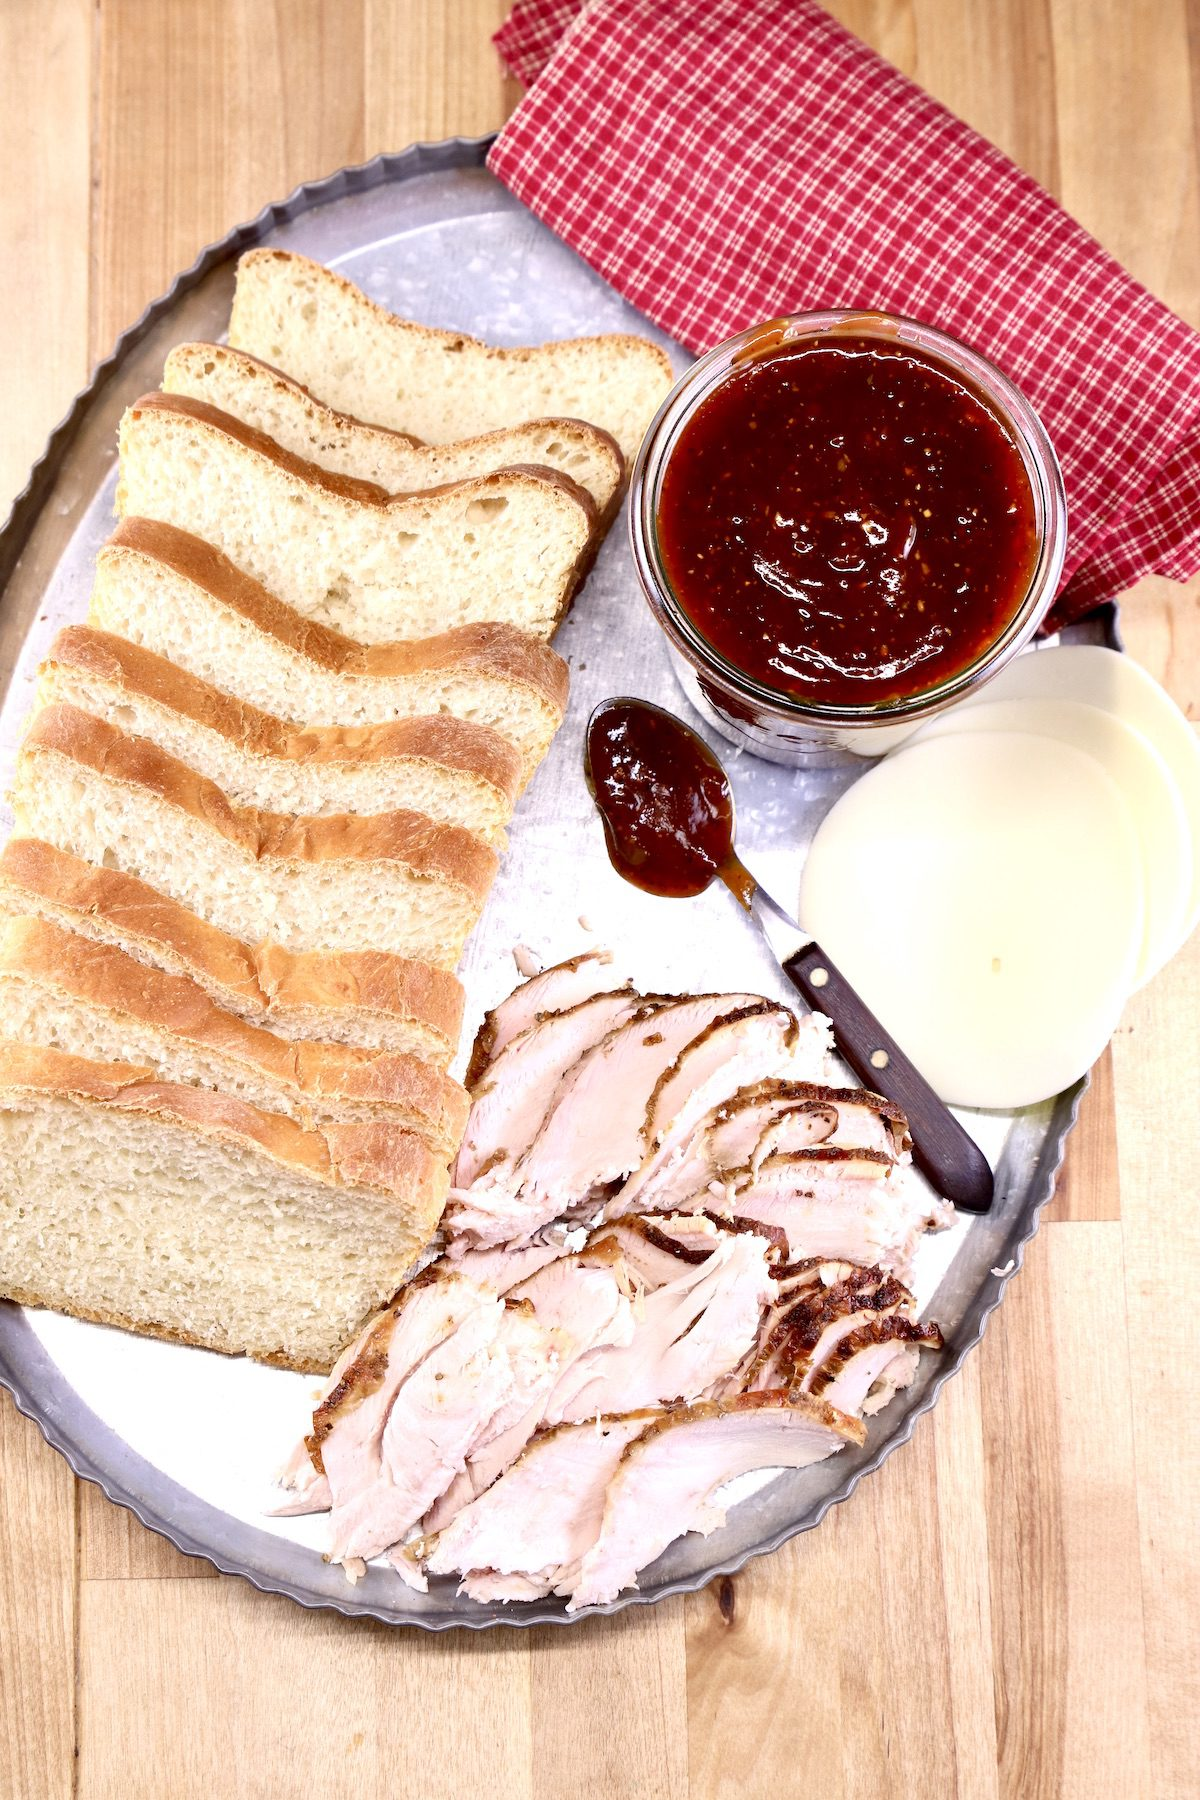 platter with sliced bread, jalapeno bbq sauce in a jar, sliced cheese and sliced smoked turkey